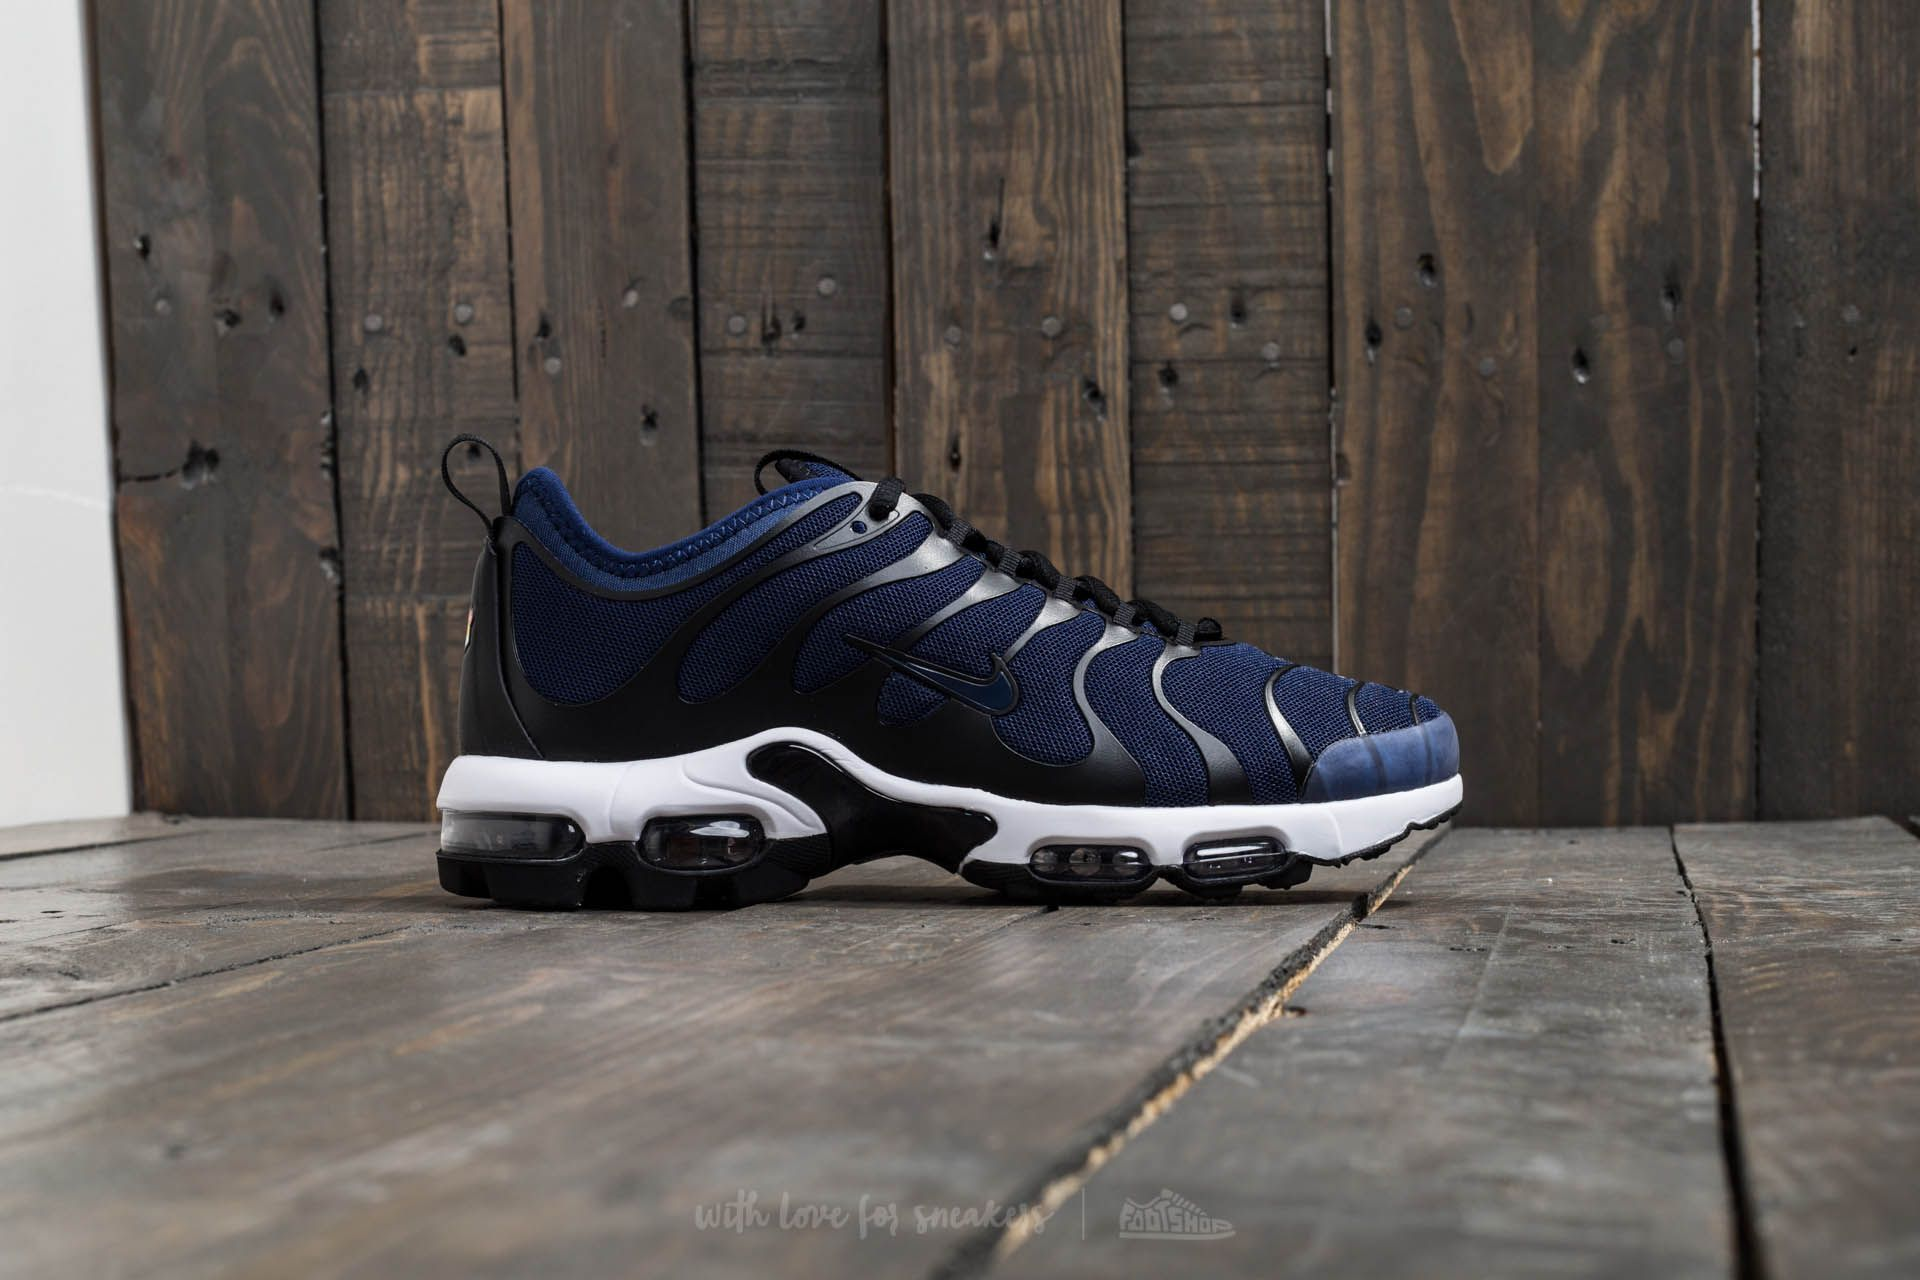 designer fashion da740 019f3 ... shop nike wmns air max plus tn ultra binary blue binary blue black a  muy be80e